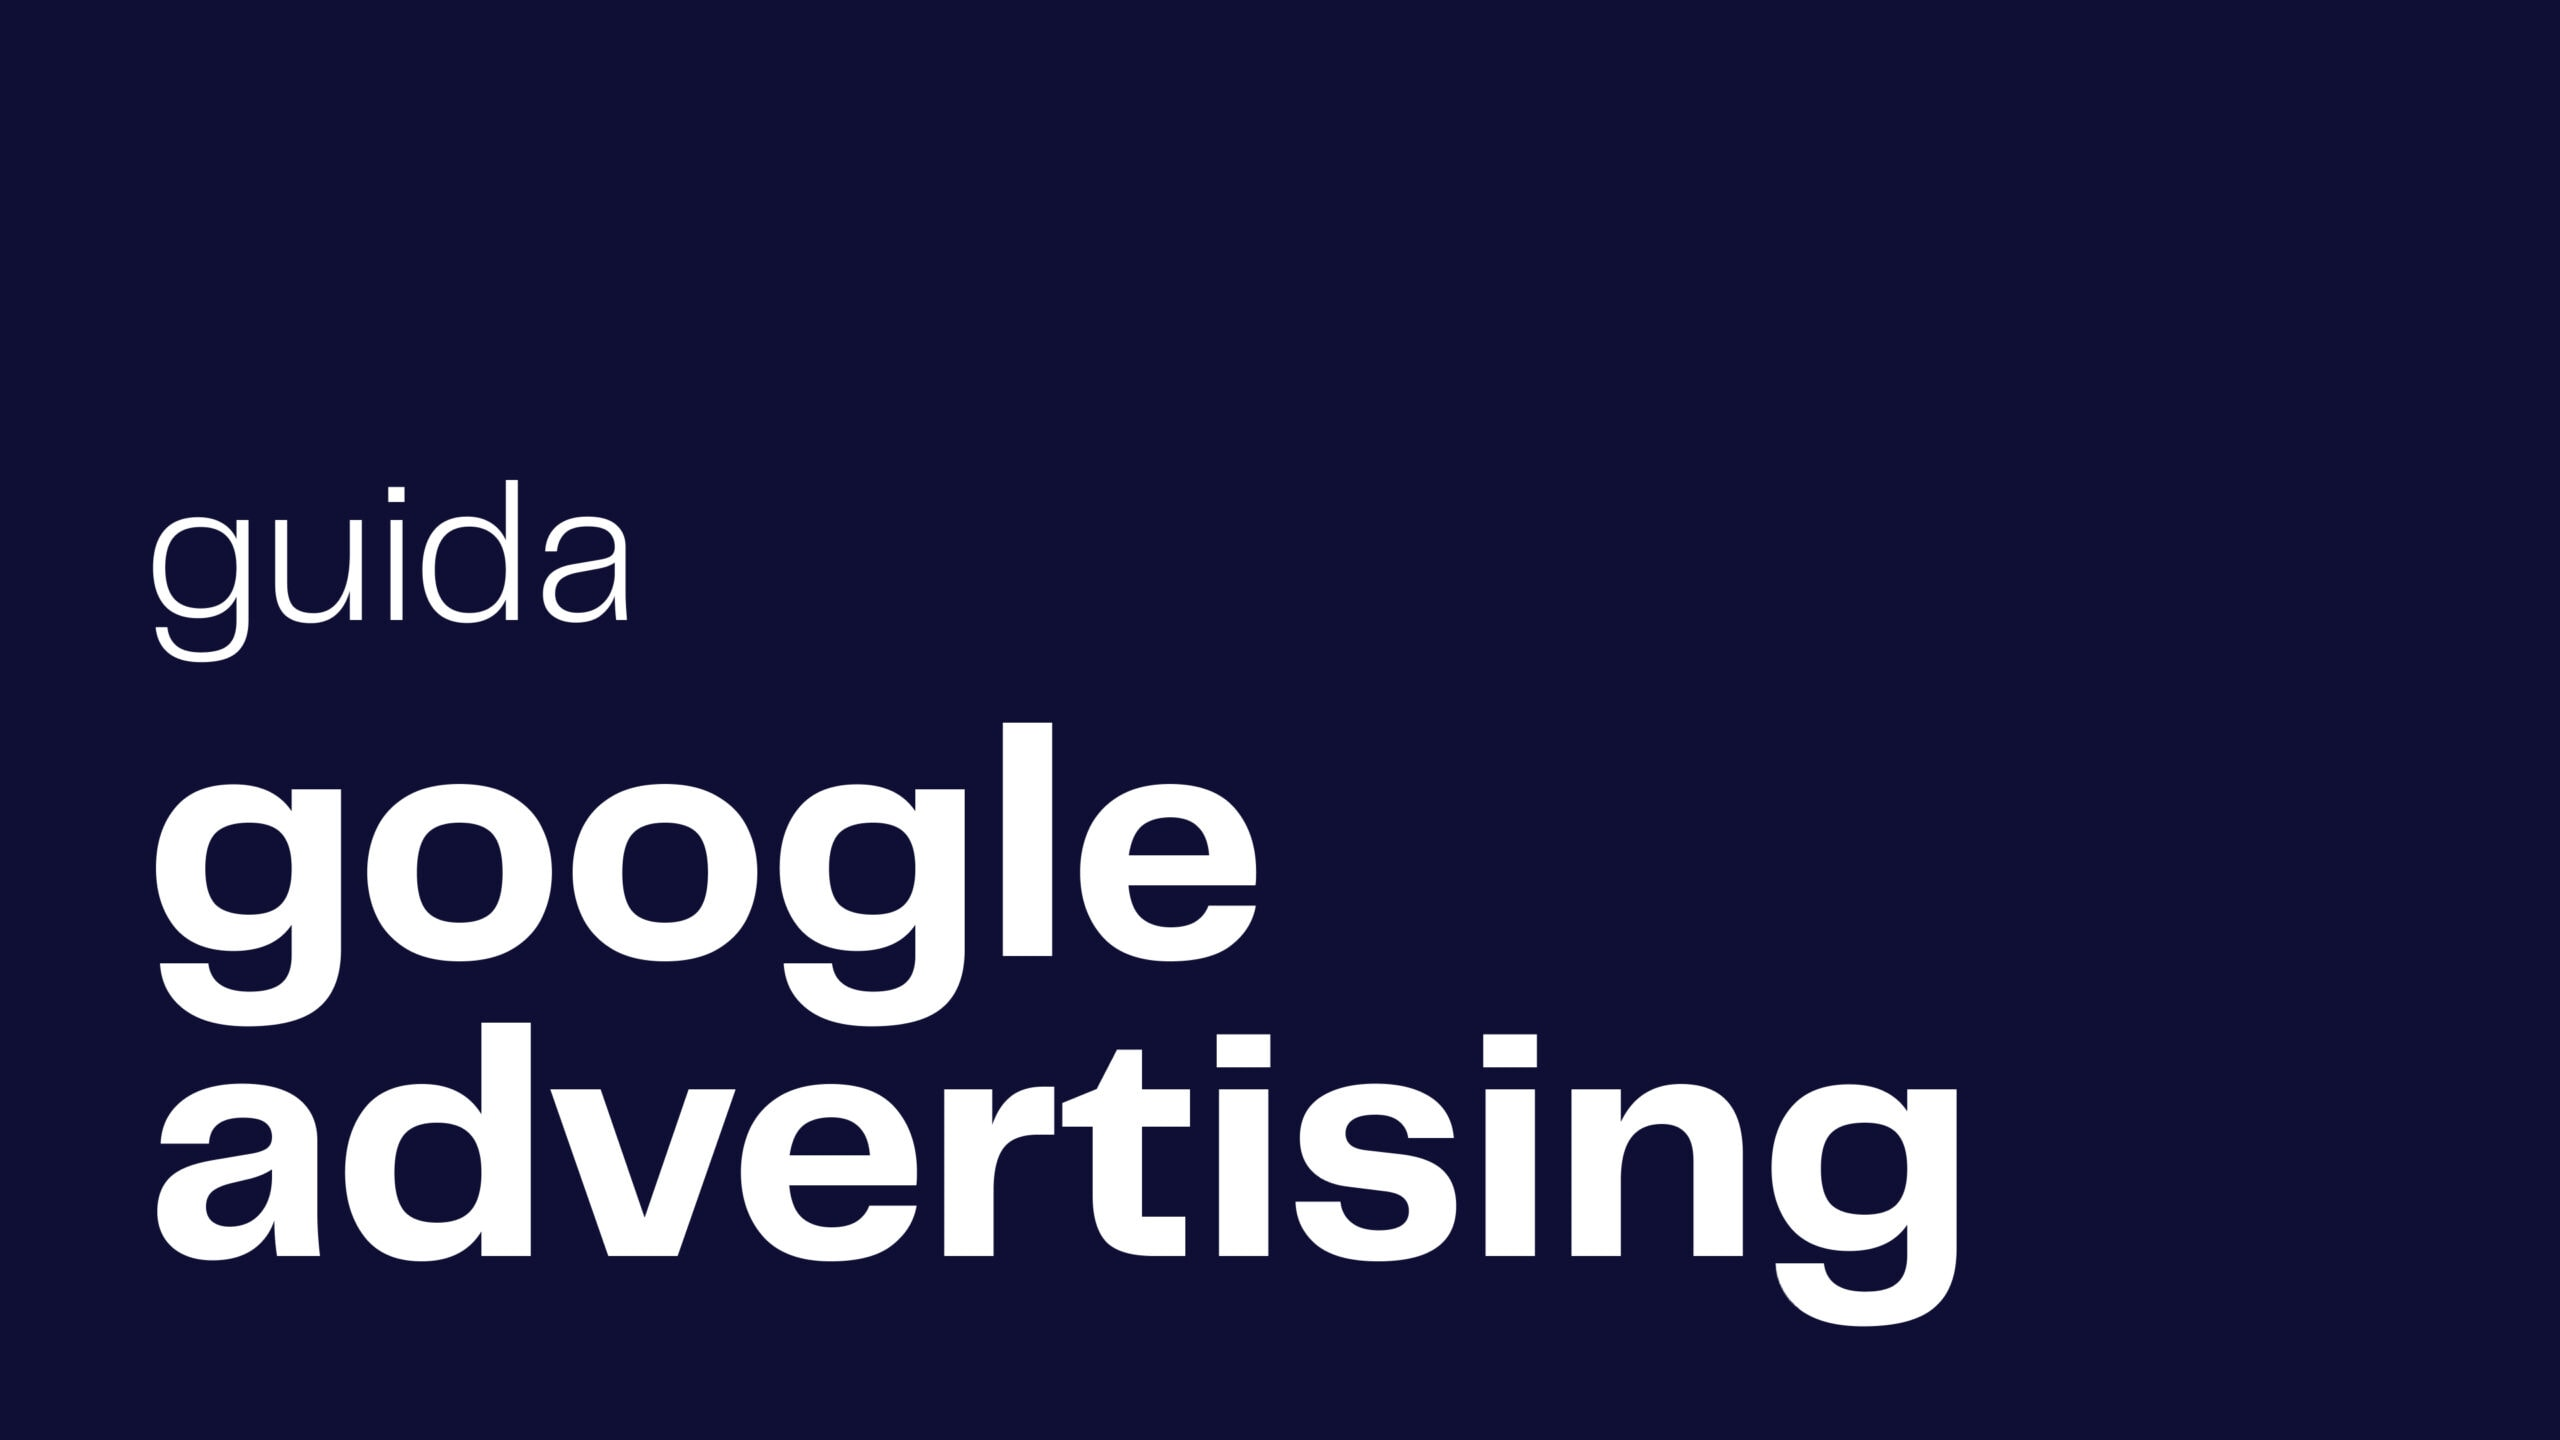 guida google advertising